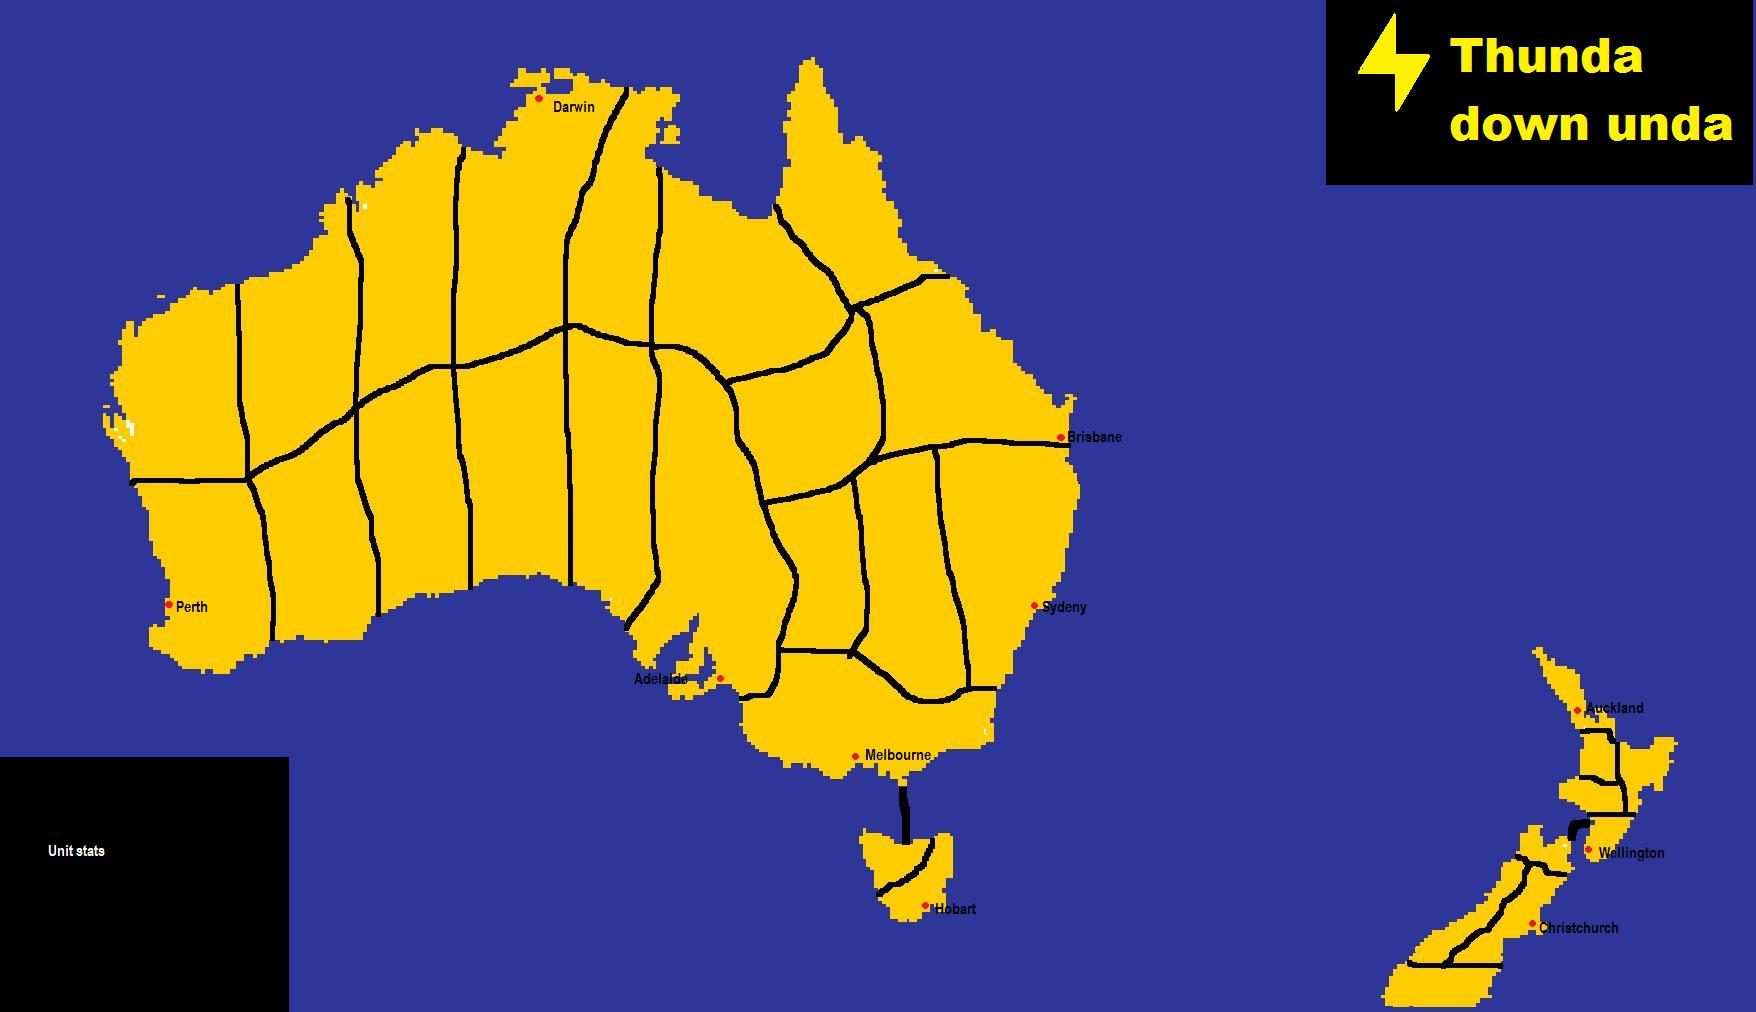 Thunda down under map 5.jpg